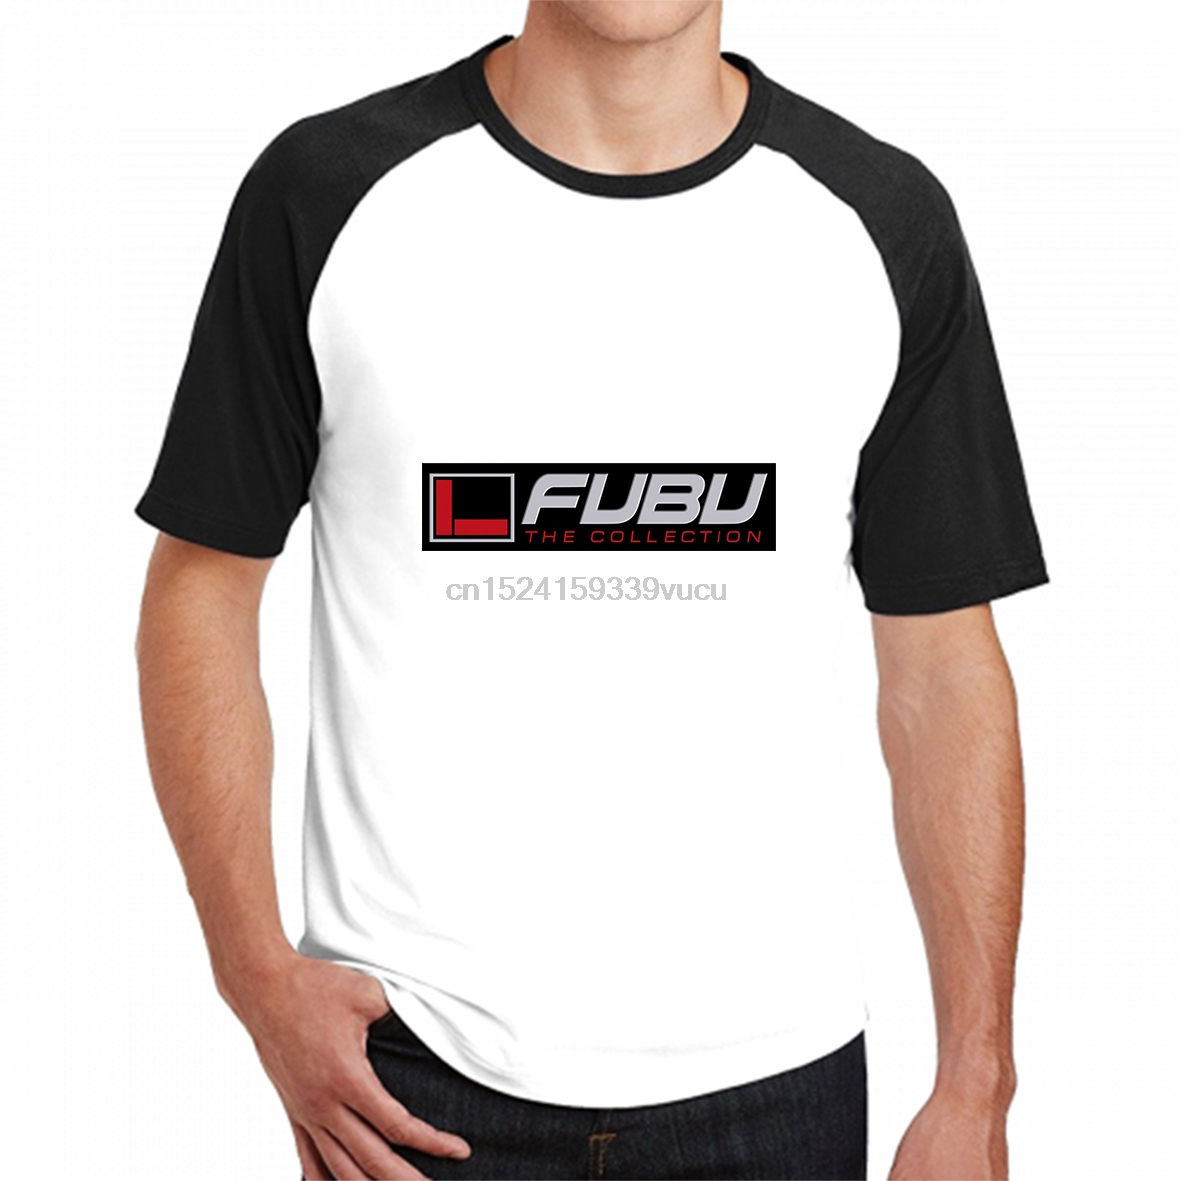 324bdbf9f65f5d Buy fubu and get free shipping on AliExpress.com